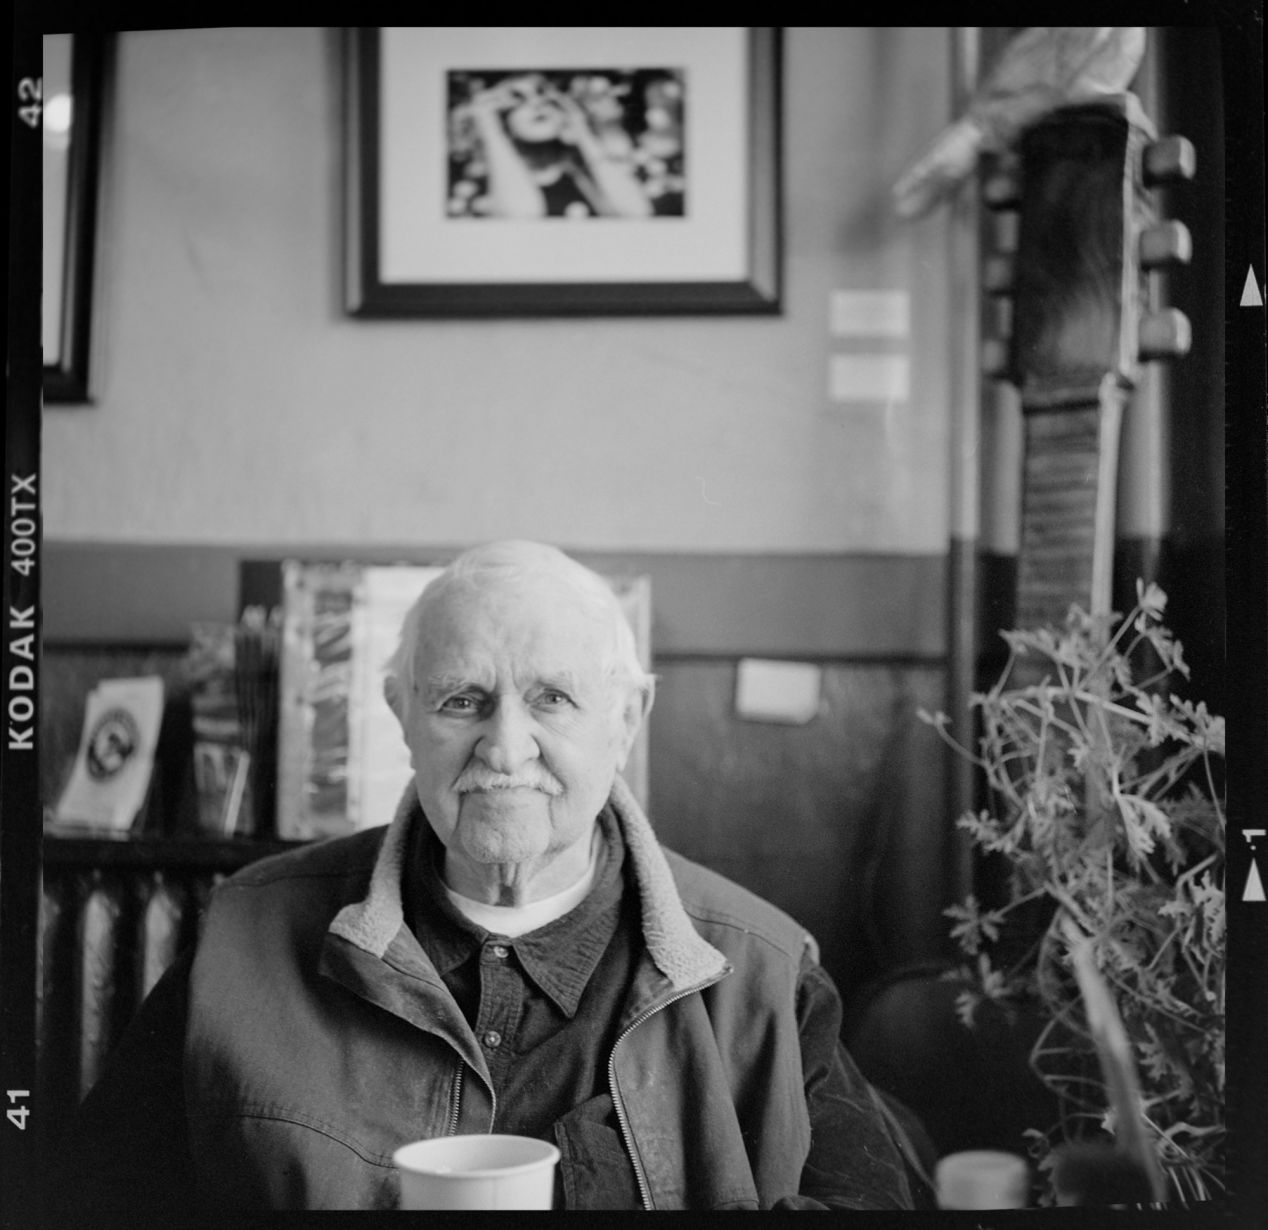 My Dad in a Langhorne Pennsylvania cafe, March 2018. I have coffee with him every workday morning — when I see him on my desk in a framed photograph.